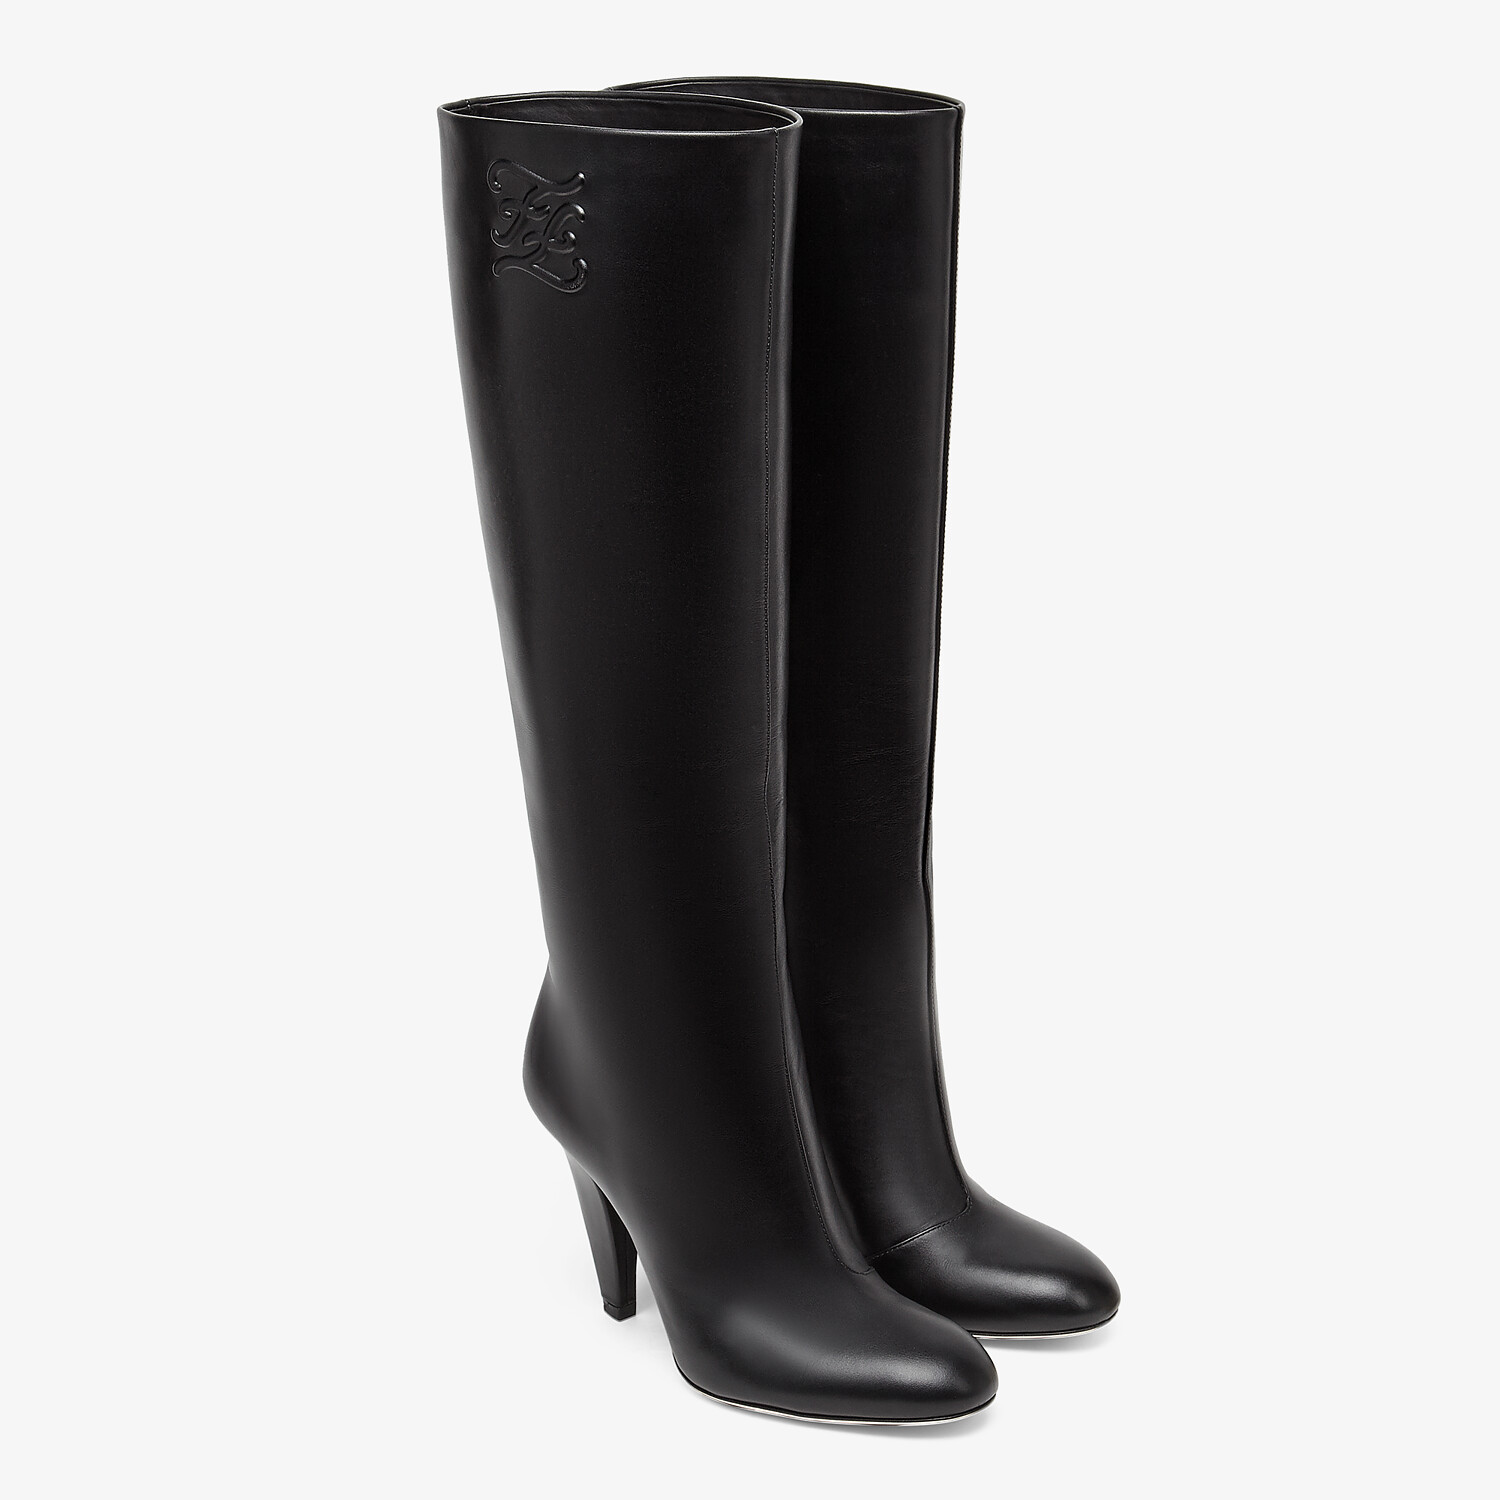 FENDI KARLIGRAPHY - Black leather, high-heeled boots - view 4 detail